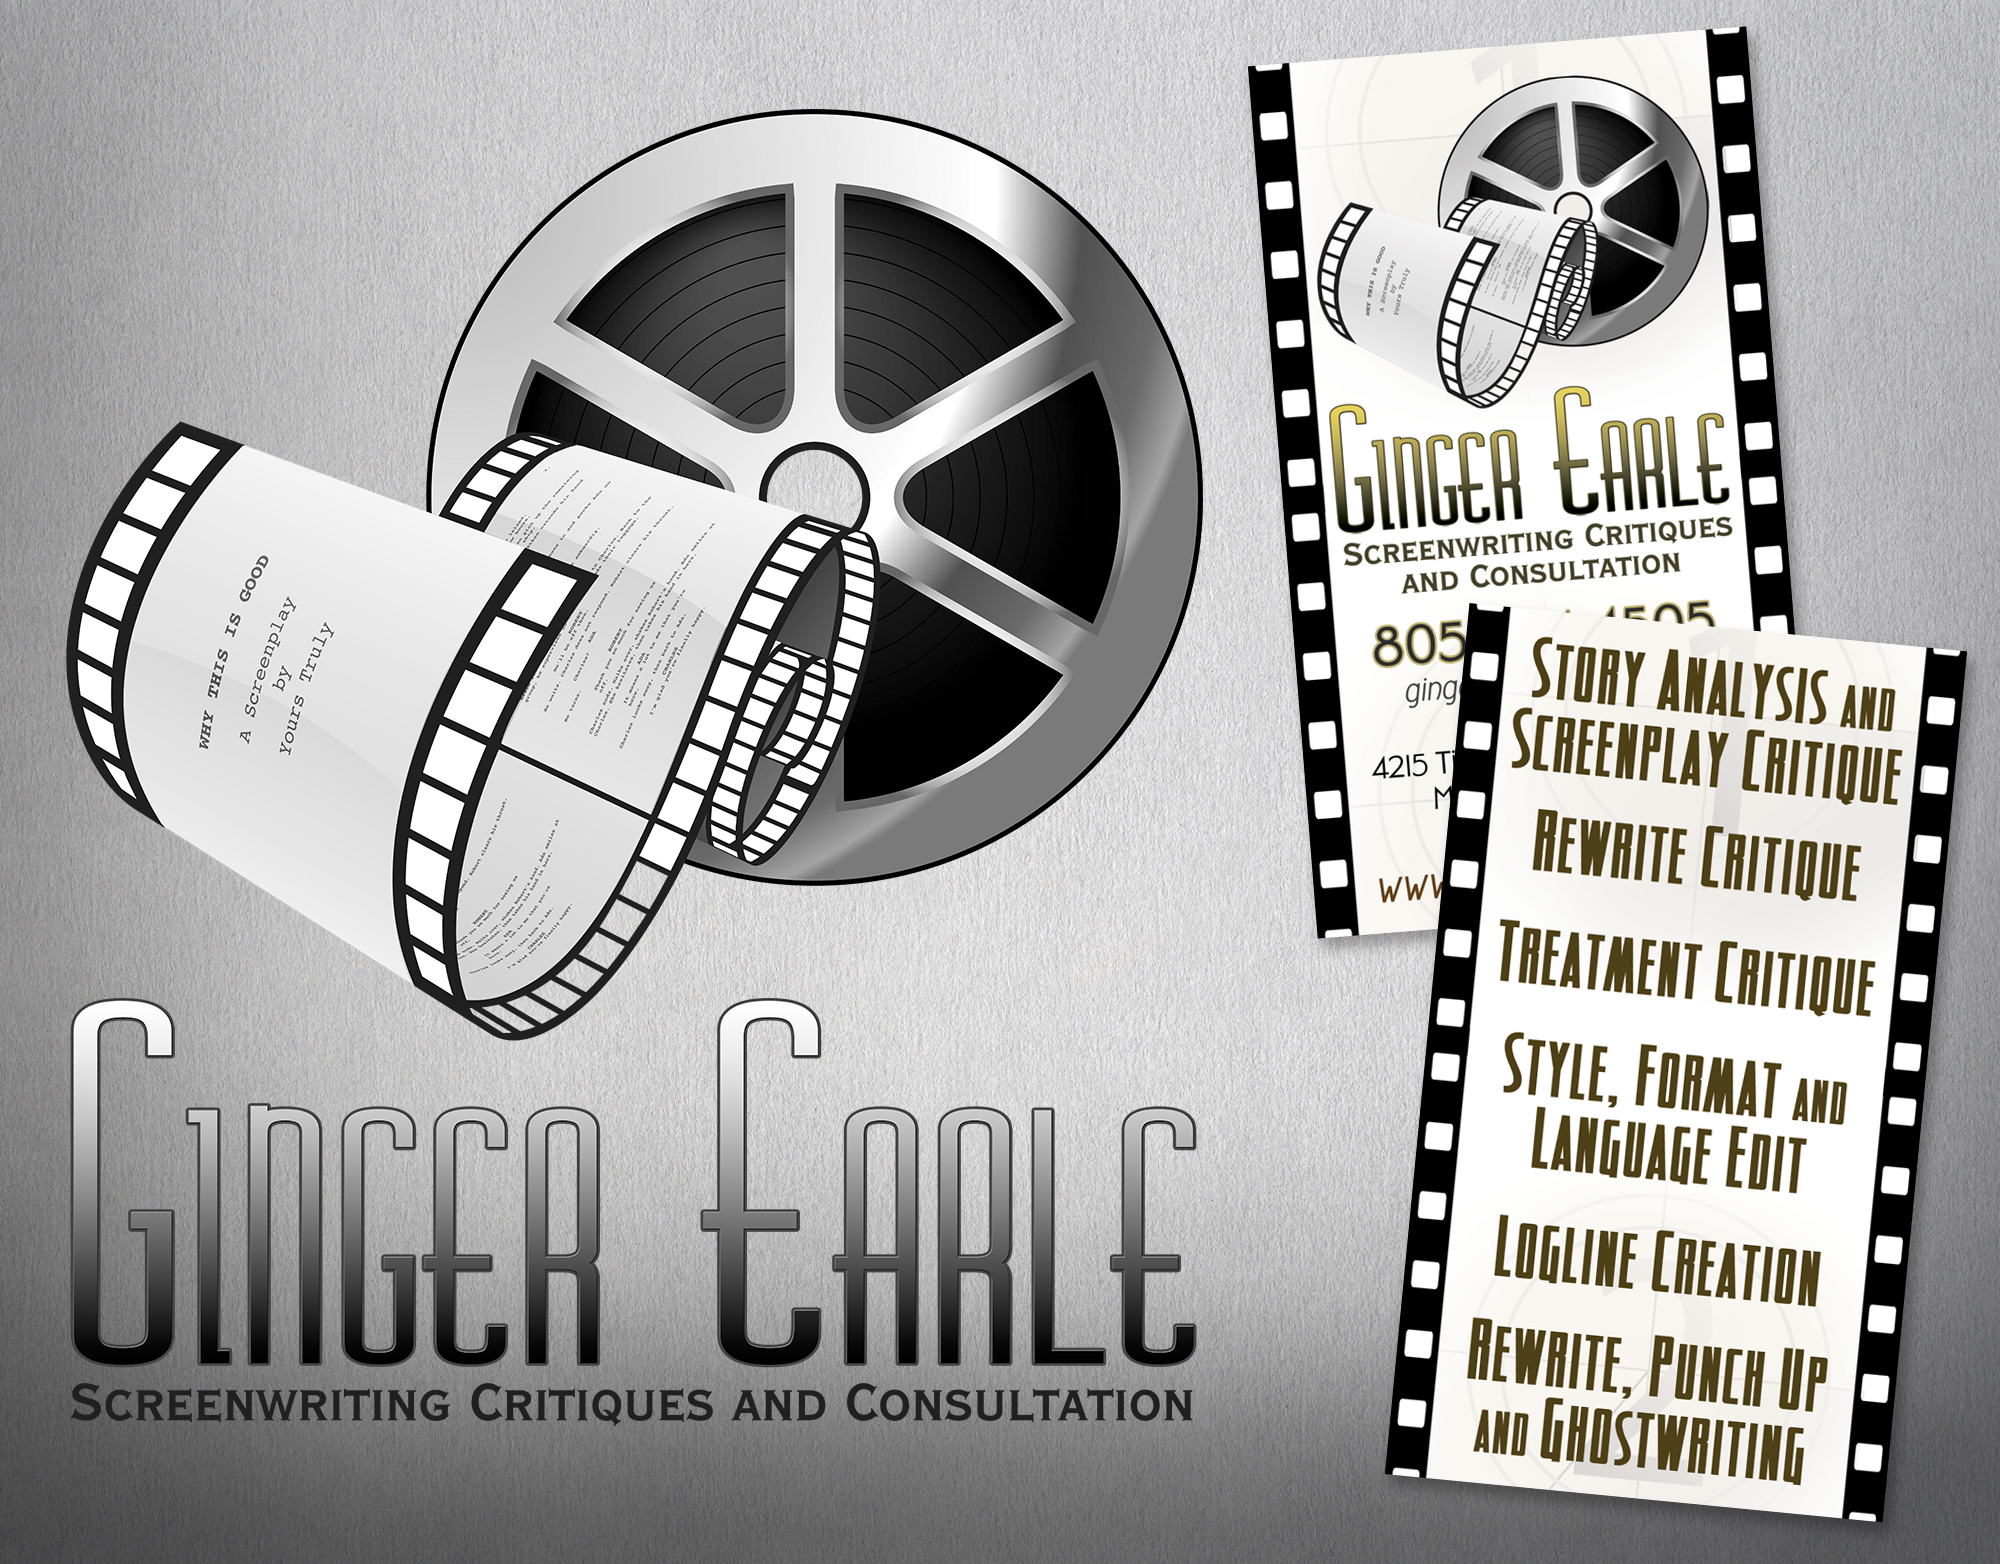 Ginger Earle Screenwriting Critiques & Consultation